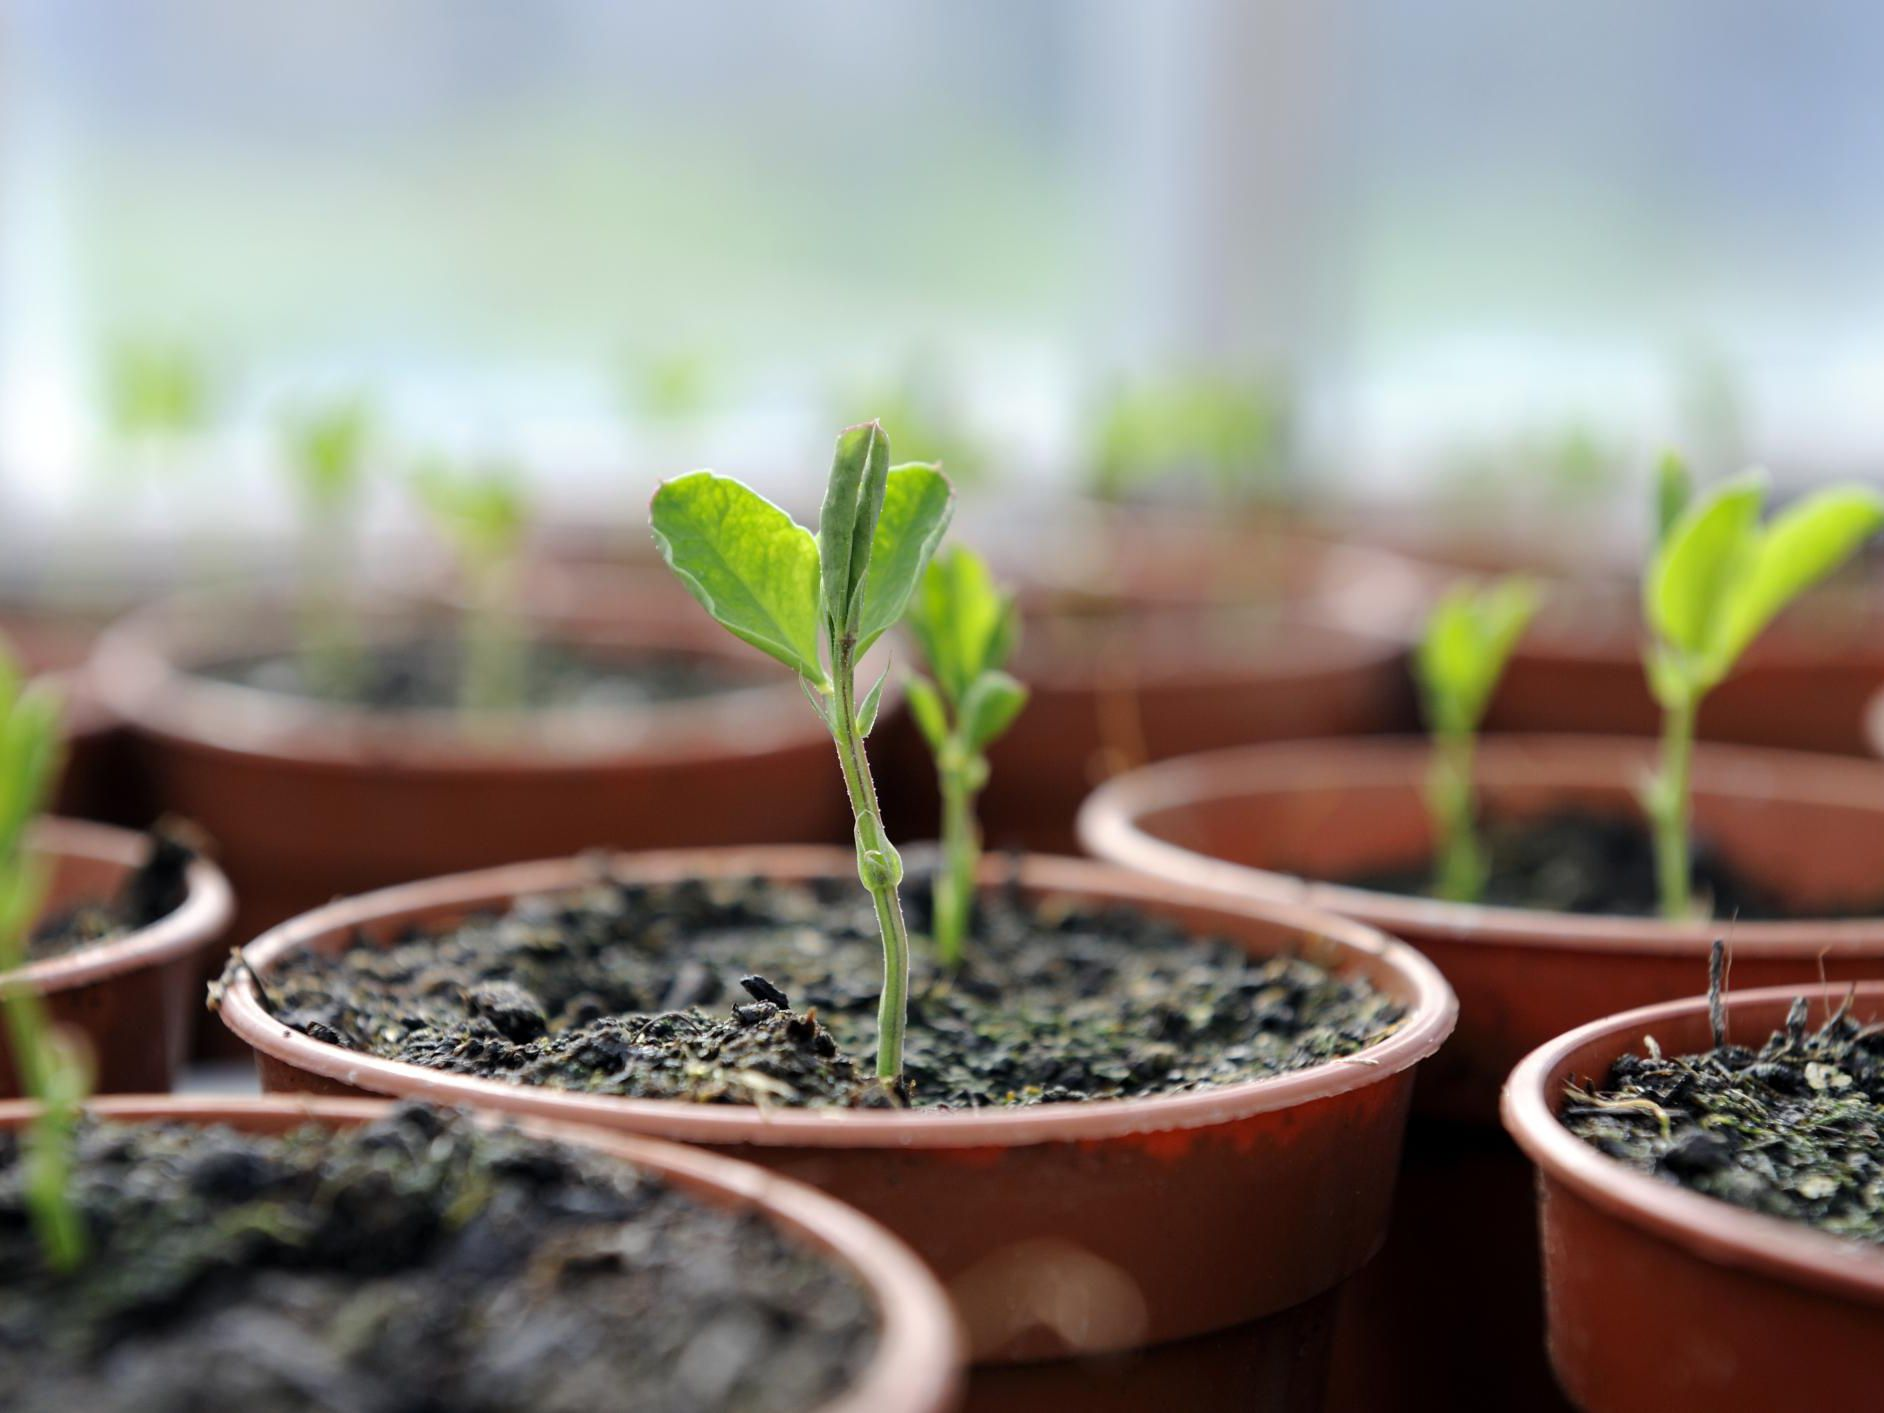 How to Care for Plant Seedlings